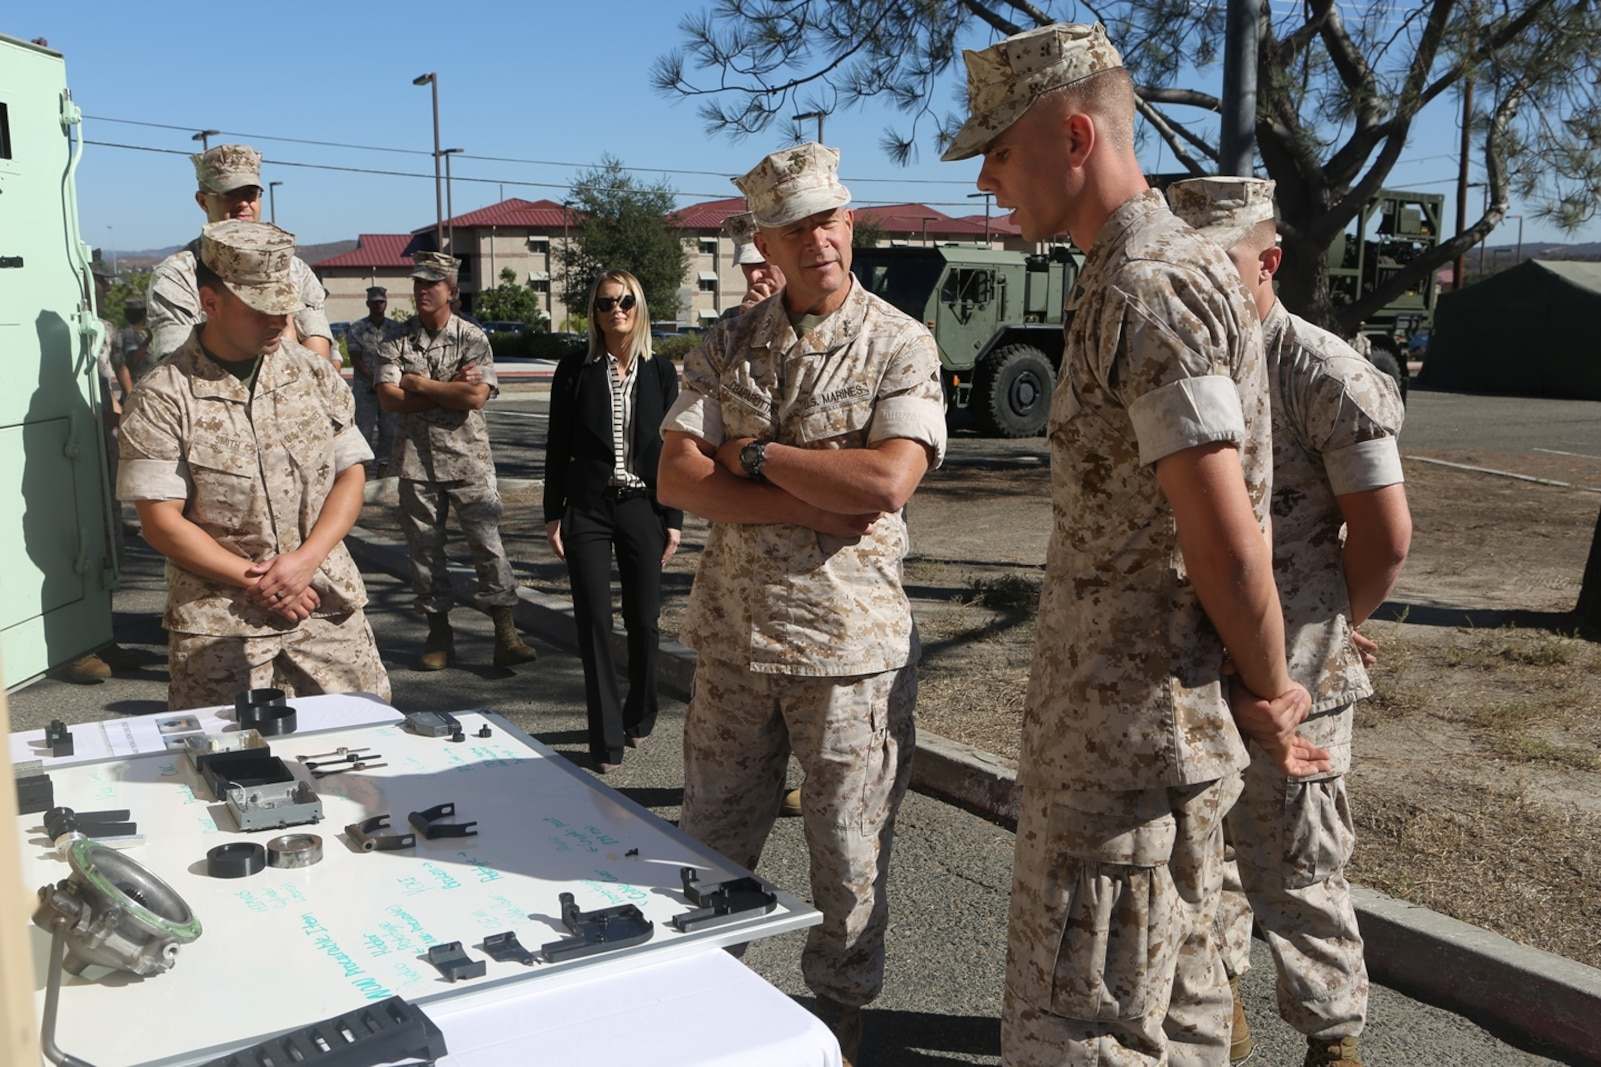 U.S. Marine Corps Lt. Gen. Lewis Craparotta, the commanding general of the I Marine Expeditionary Force, listens while Cpl. Samuel Stonestreet informs him on the capabilities of 3-D printing to Lt. Gen. Lewis Craparotta, the commanding general of the I Marine Expeditionary Force, aboard Camp Pendleton, Calif., Oct. 19, 2016. Craparotta visited the 1st MLG to see the most up-to-date capabilities the logistics command has to offer I MEF.  Stonestreet is a ground radio repairman with 1st Transportation Support Battalion, Combat Logistics Regiment 1, 1st Marine Logistics Group. (U.S. Marine Corps photo by Lance Cpl. Joseph Sorci)